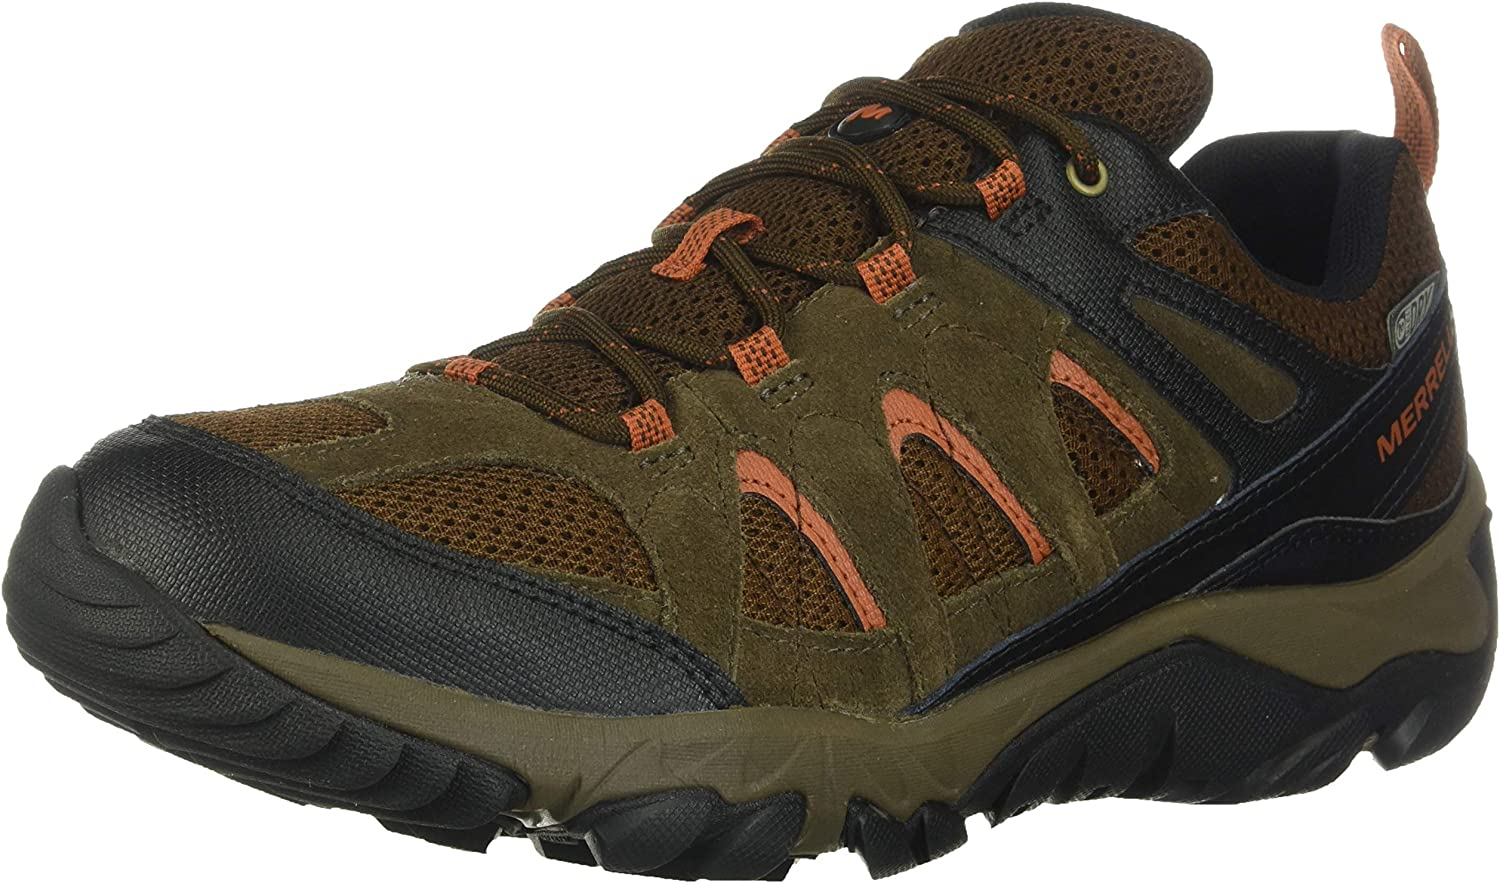 Outmost Vent Waterproof Hiking Shoe